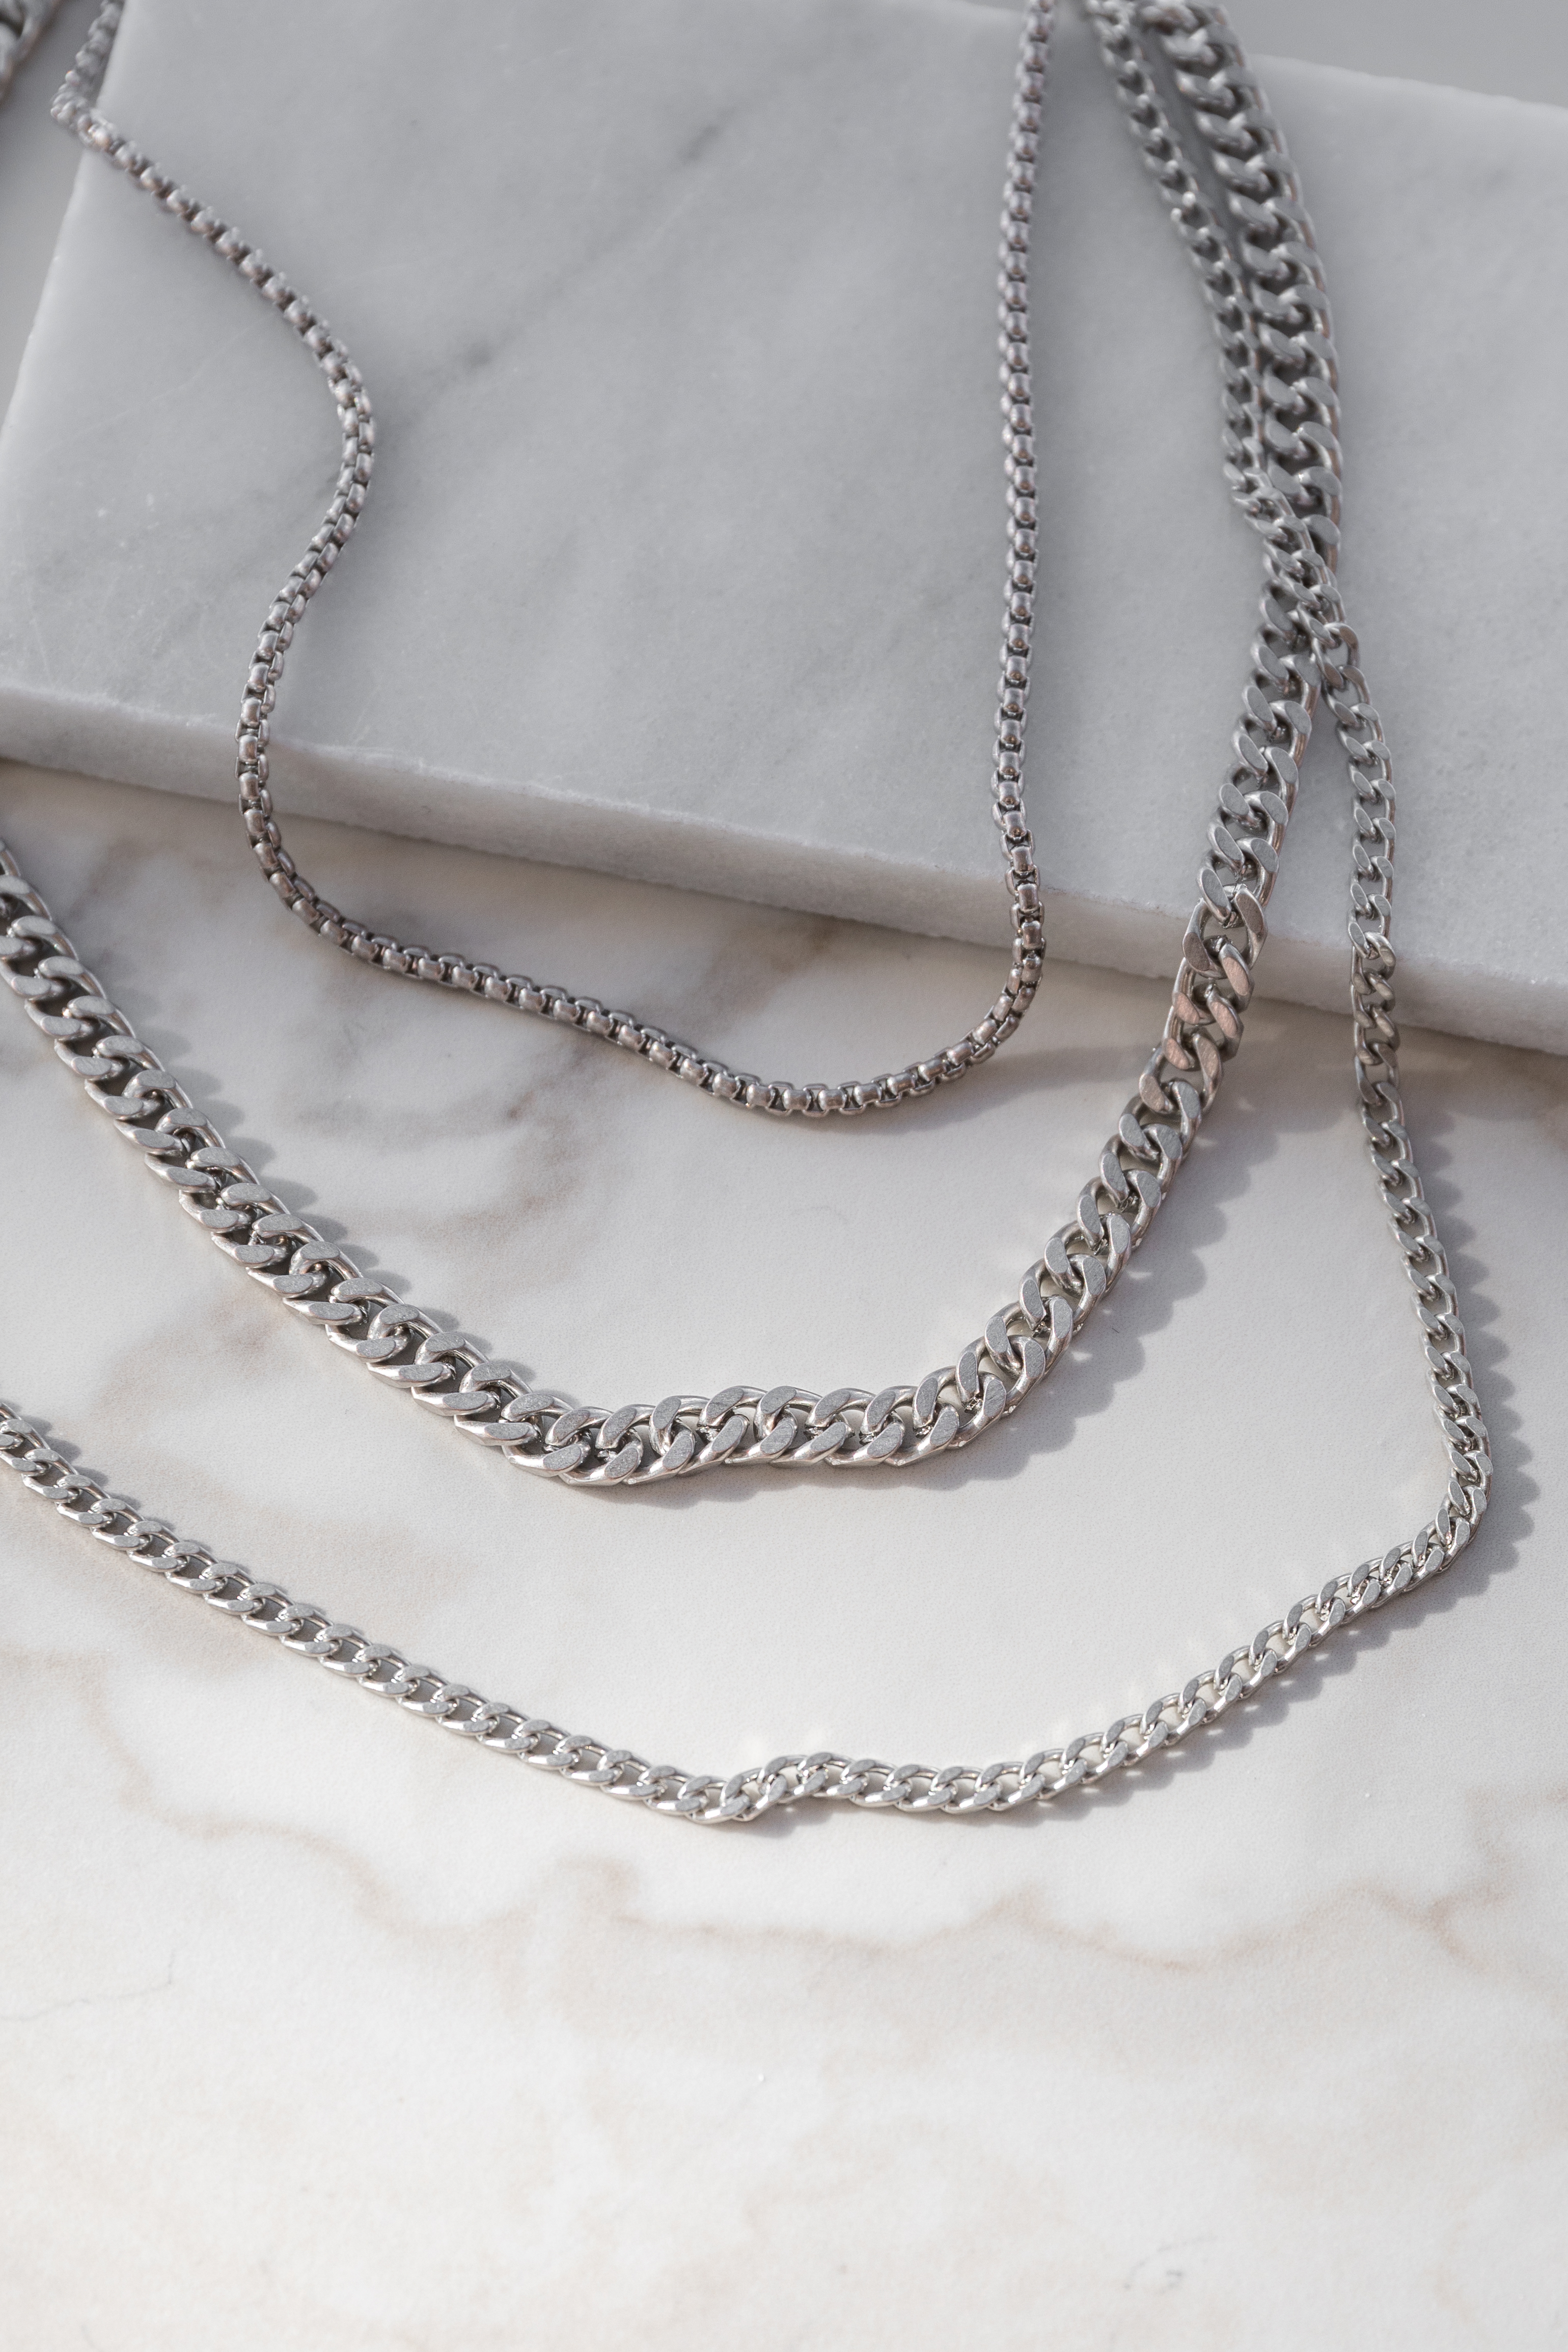 Silver Simple Layered Chain Necklace